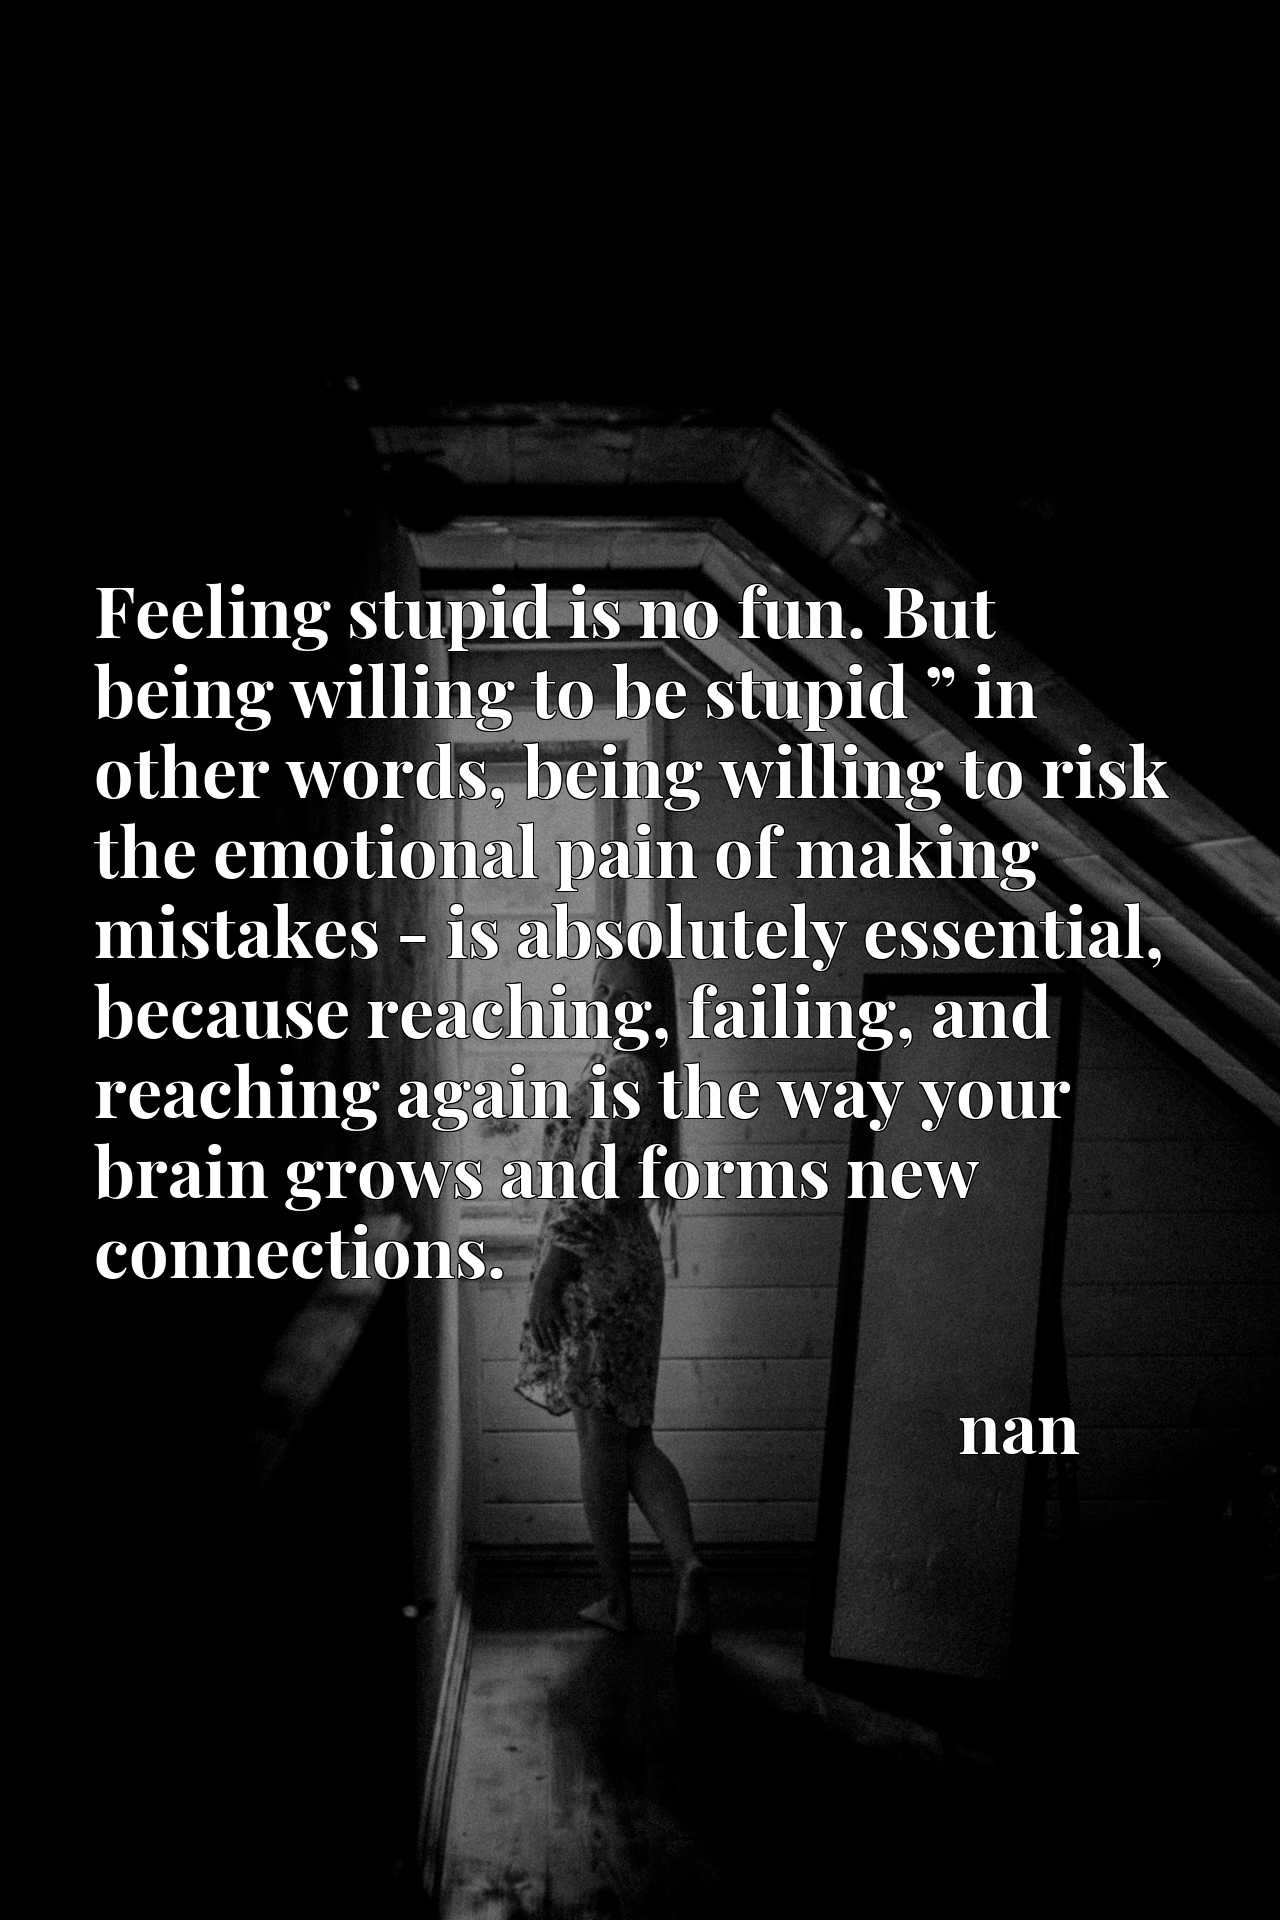 """Feeling stupid is no fun. But being willing to be stupid """" in other words, being willing to risk the emotional pain of making mistakes - is absolutely essential, because reaching, failing, and reaching again is the way your brain grows and forms new connections."""